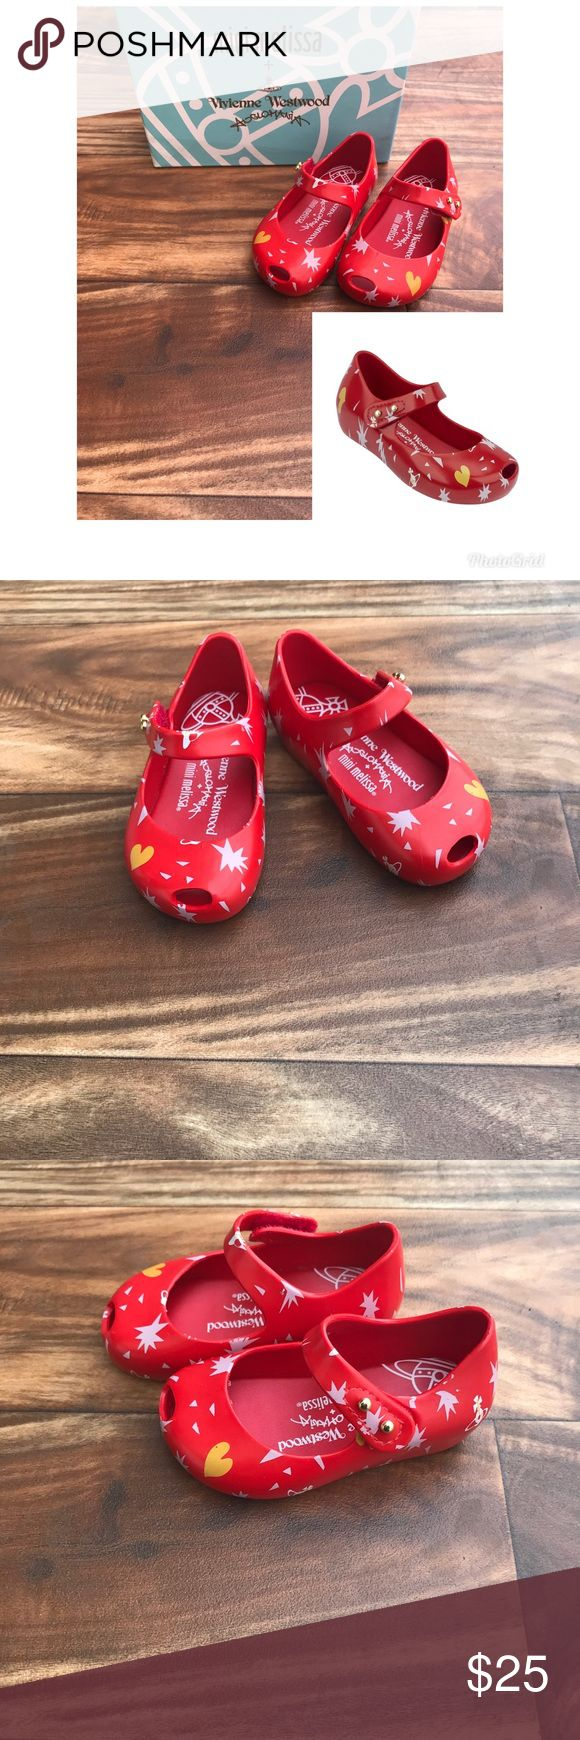 Melissa Vivienne Westwood Red Jelly Toddler Shoes New with box Great and comfy style  Size 5  Red shoes Melissa Shoes